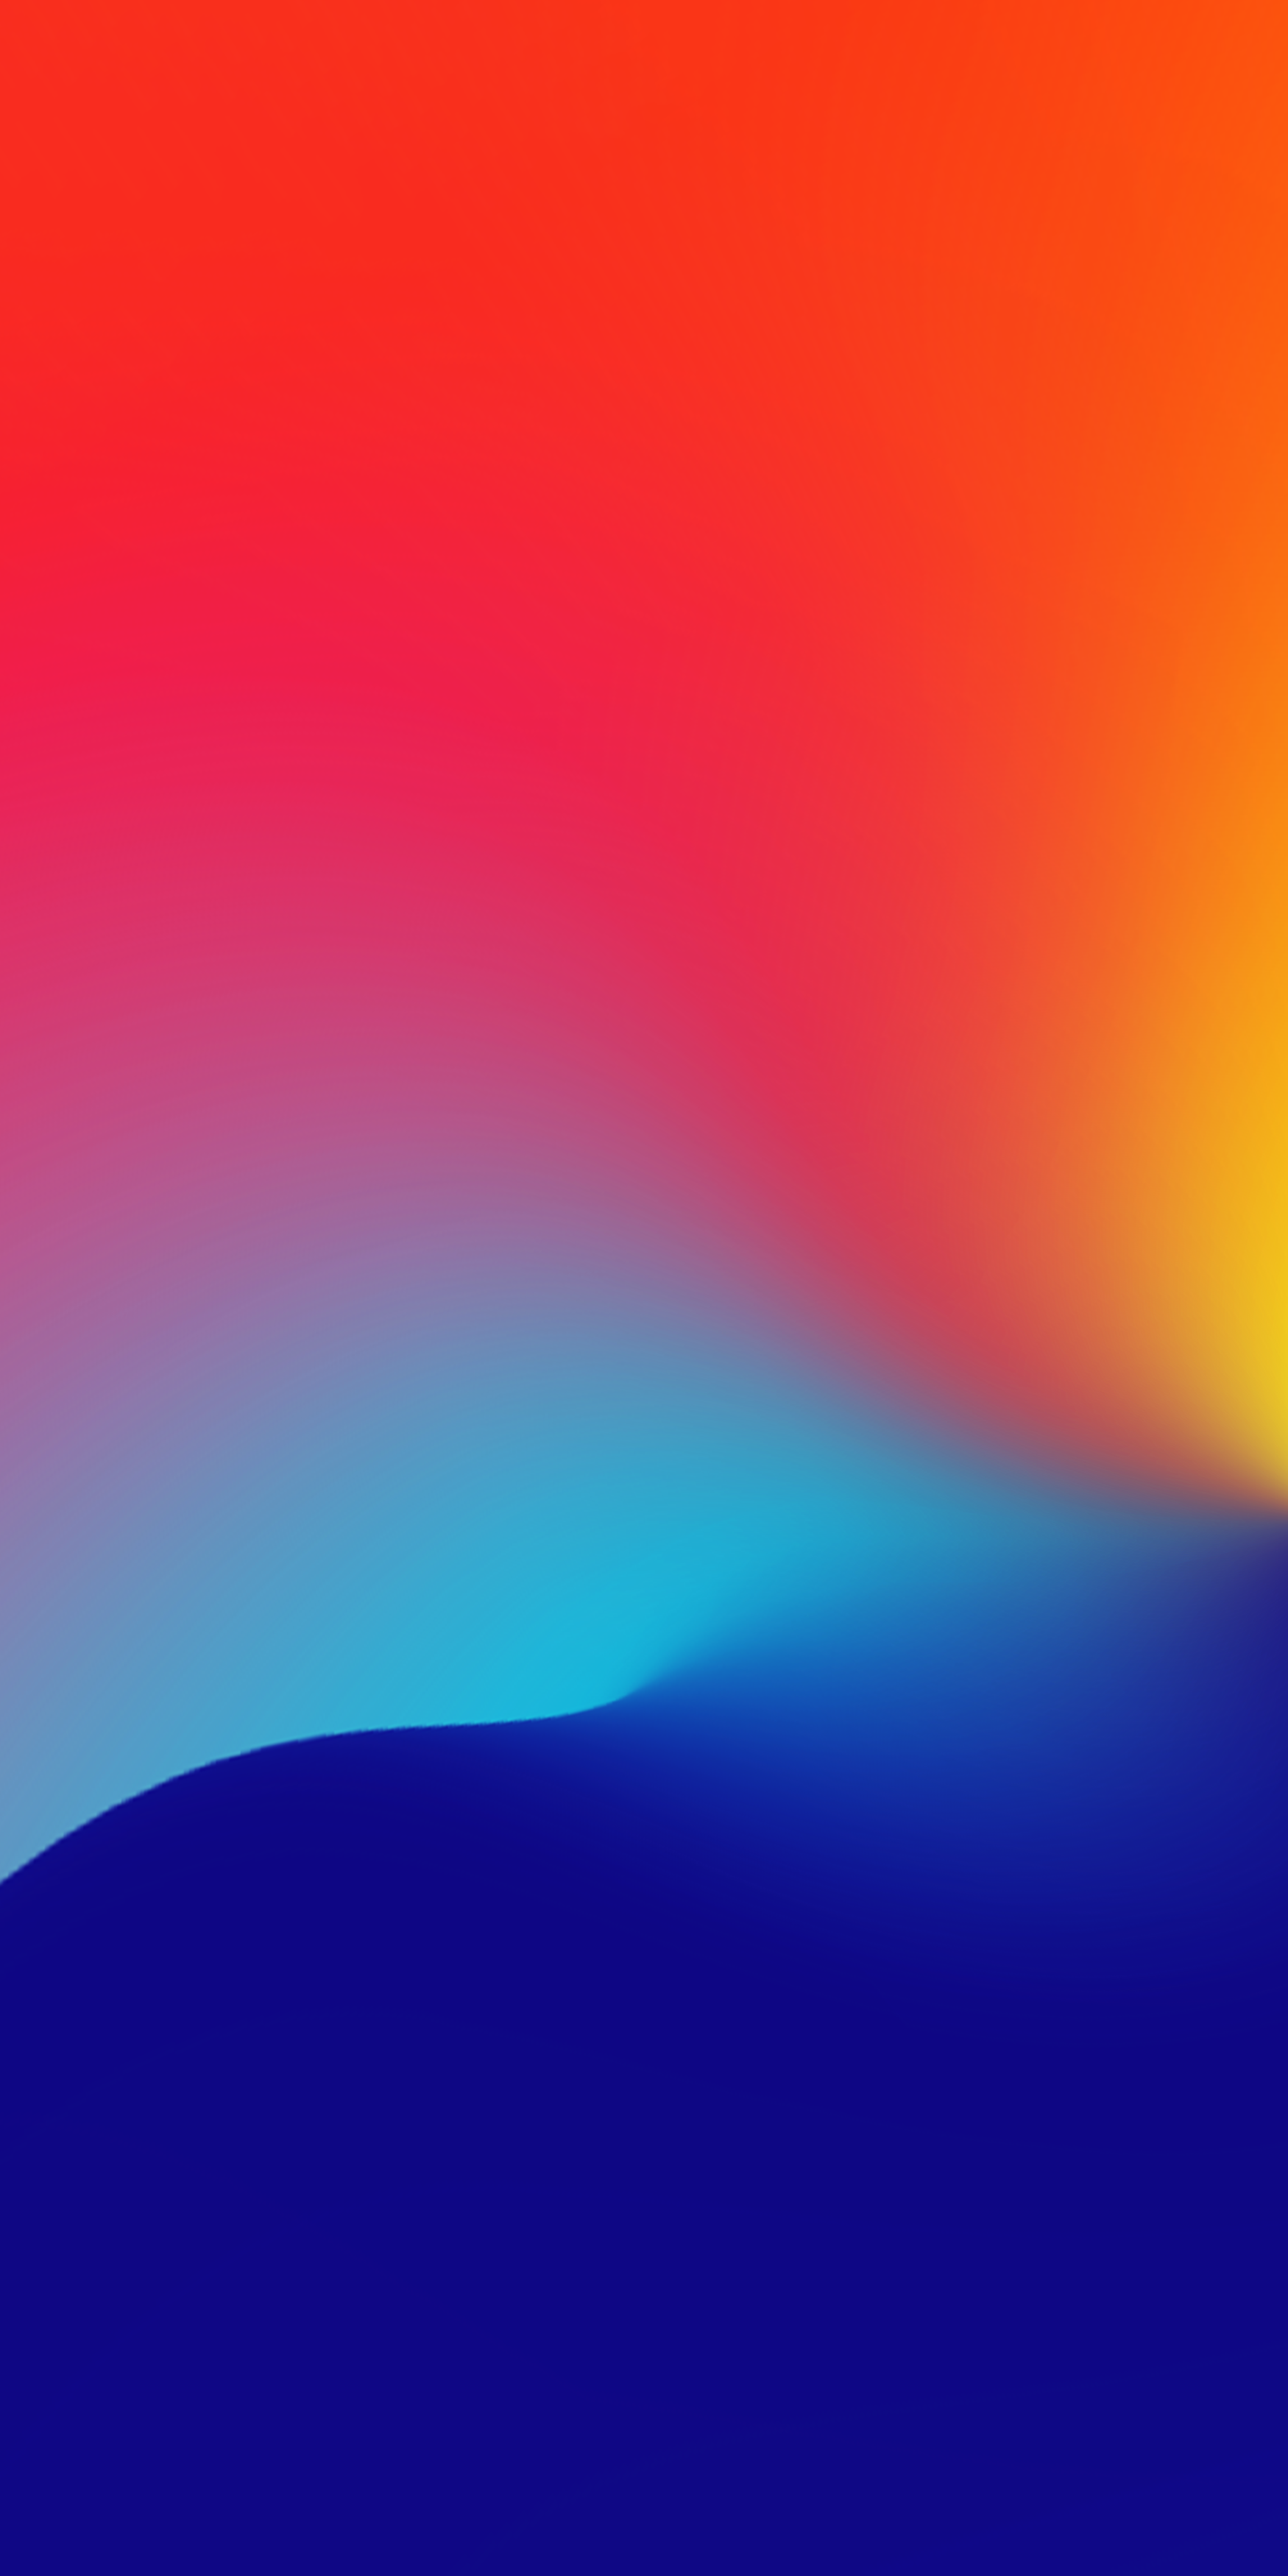 swooping gradient by @ongliong11 on Twitter